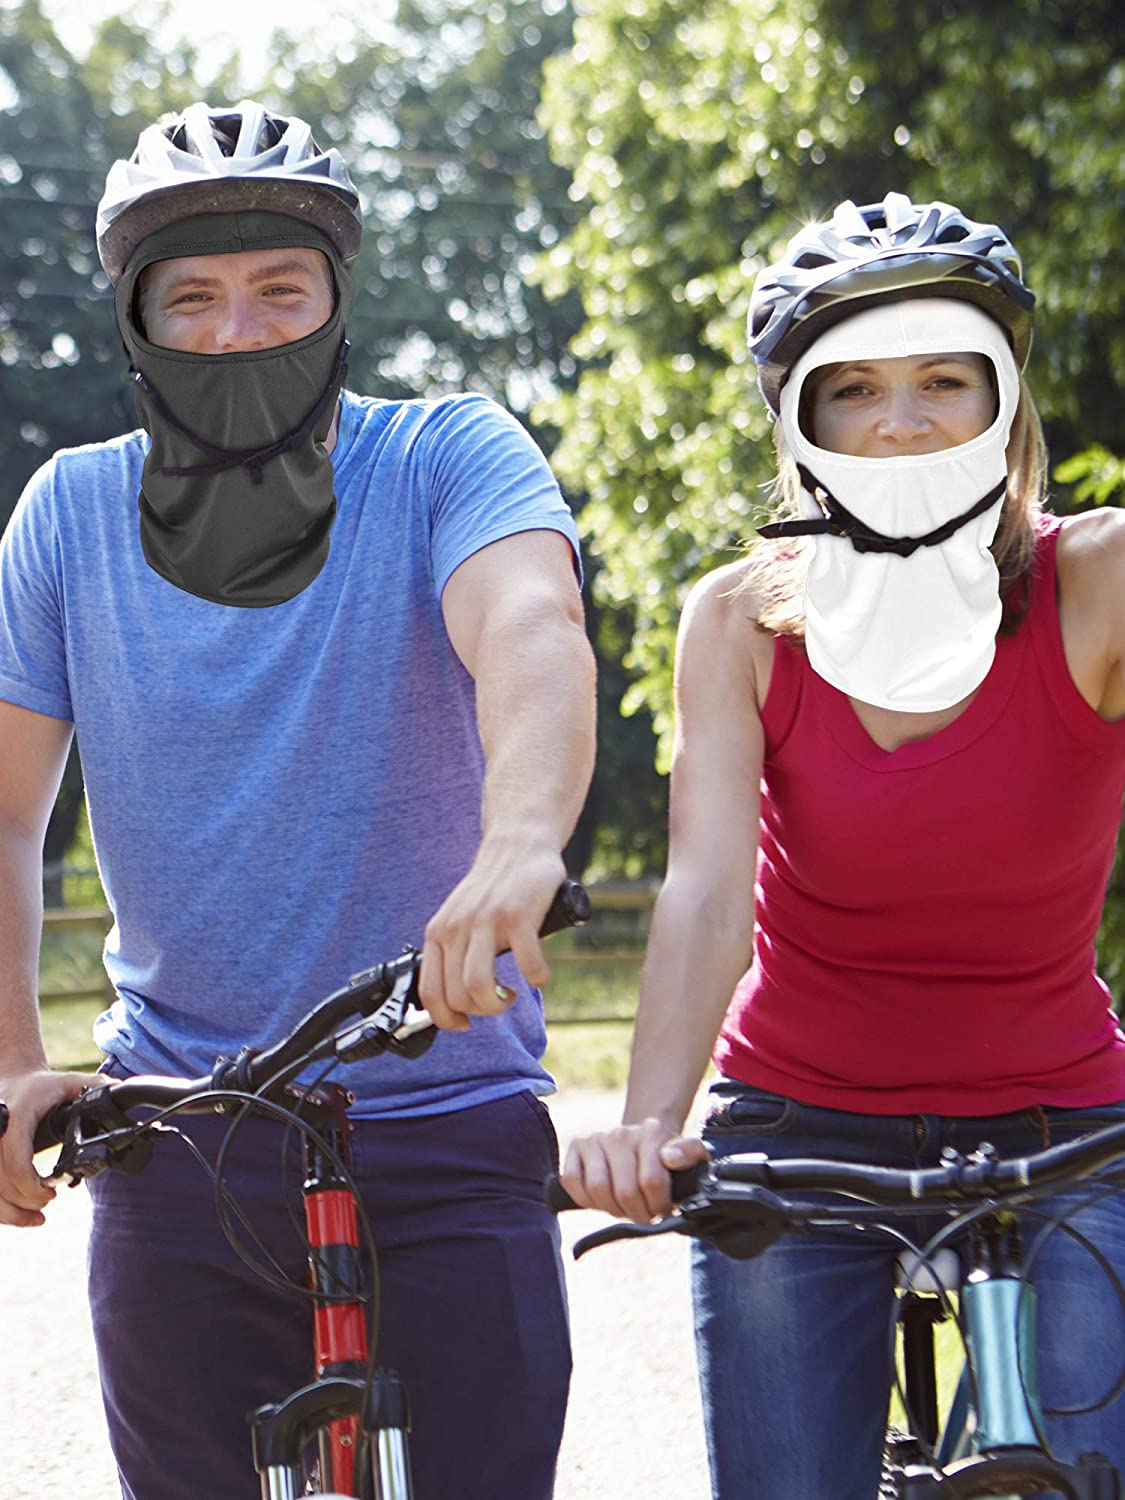 6 Pieces Balaclava Mask Ice Silk UV Protection Full-face Mask for Women and Men Outdoor Sports